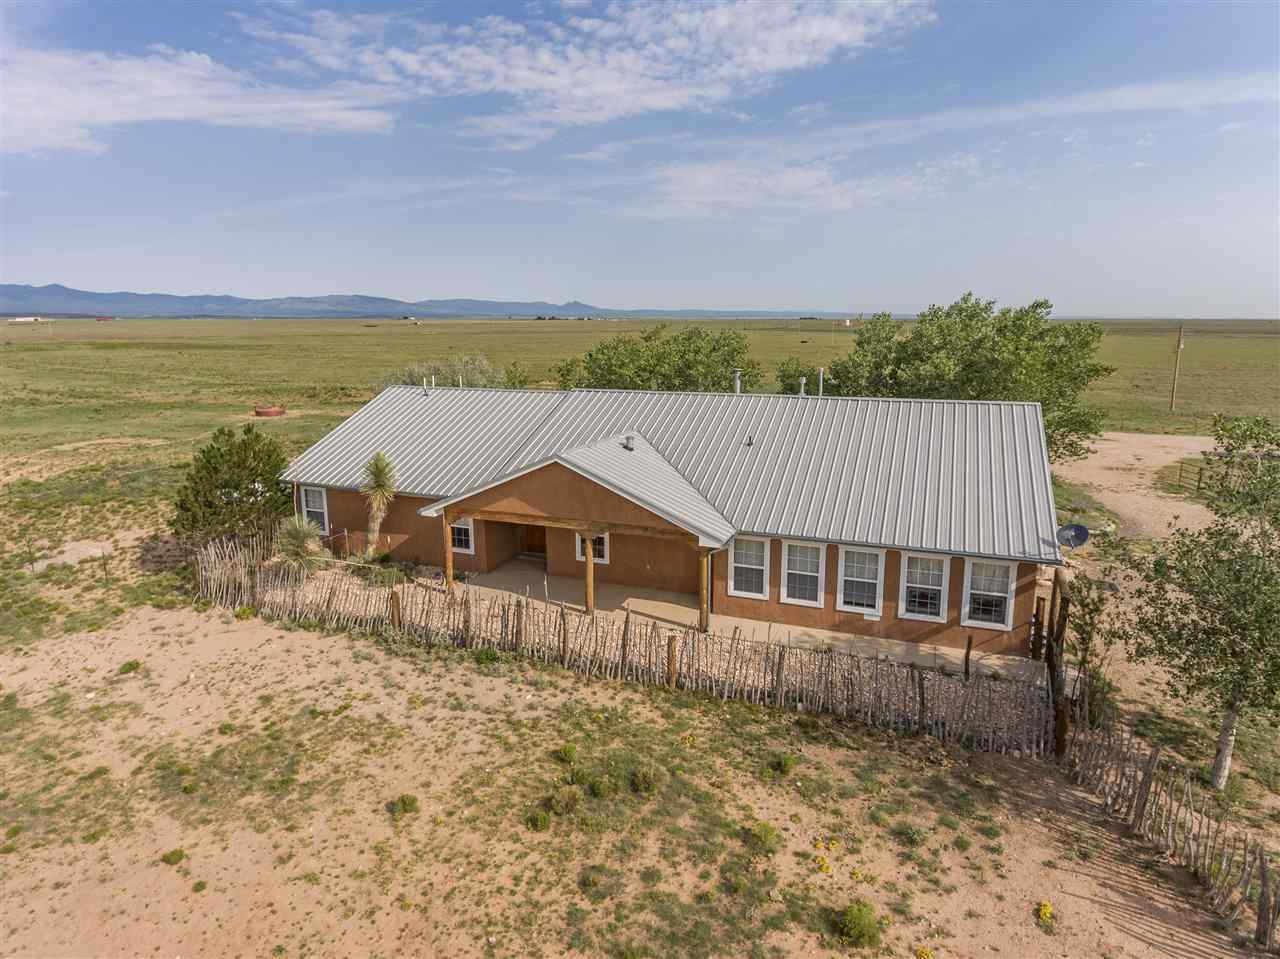 This central New Mexico scenic equine & cattle ranch is just east of Mountainair and sits on 296 acres of blue gramma grass. The property is fenced and cross fenced, a 64 x 80 horse barn, 30 x 60 metal shop barn, 25 x 50 hay storage shed, and a 150 x 300 outdoor riding arena. There are a multitude of pens, a cattle loading chute, electronic scales and a 384 sf bunk house or guest house. The home is 2156 sf of heated space with 4 bedrooms and 3 baths, garage is 578 sf. The western themed home has many artistic features and boast cowboy country charm throughout. The covered porch faces the northwestern mountains for spectacular mountain views and amazing sunsets. If your dream is to own a horse property where you can ride and run a few head of cattle year round, this is it, look no further. Albuquerque and Santa Fe NM are both within easy driving distance.